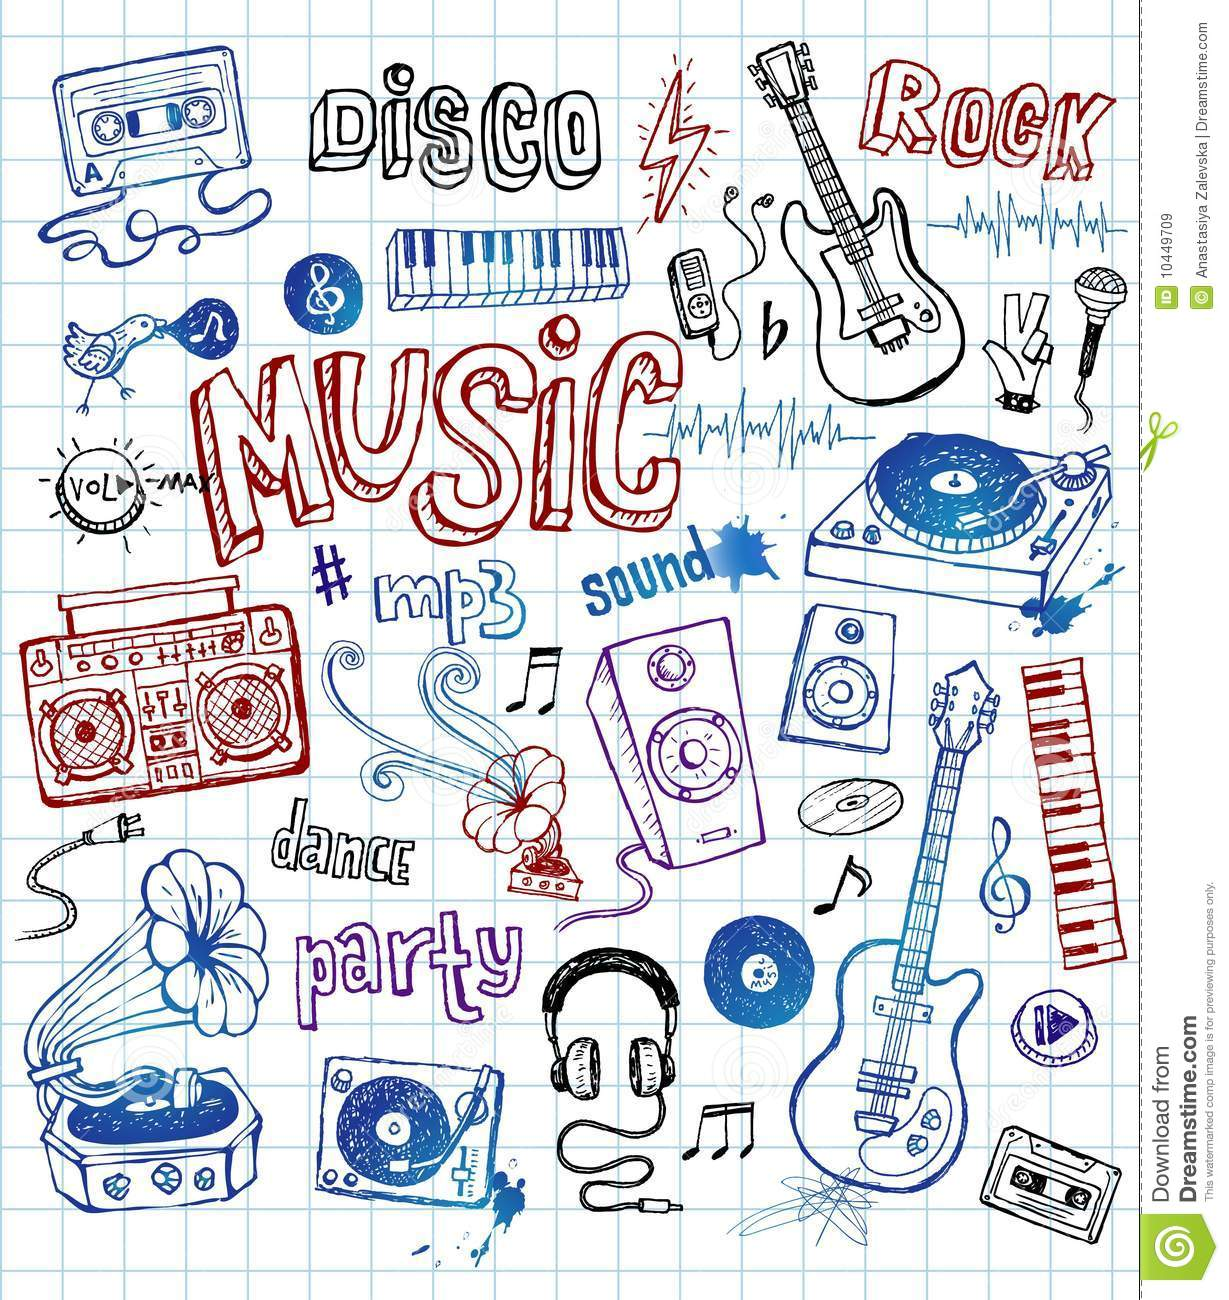 Sketchy Music Illustrations Royalty Free Stock Images - Image ...